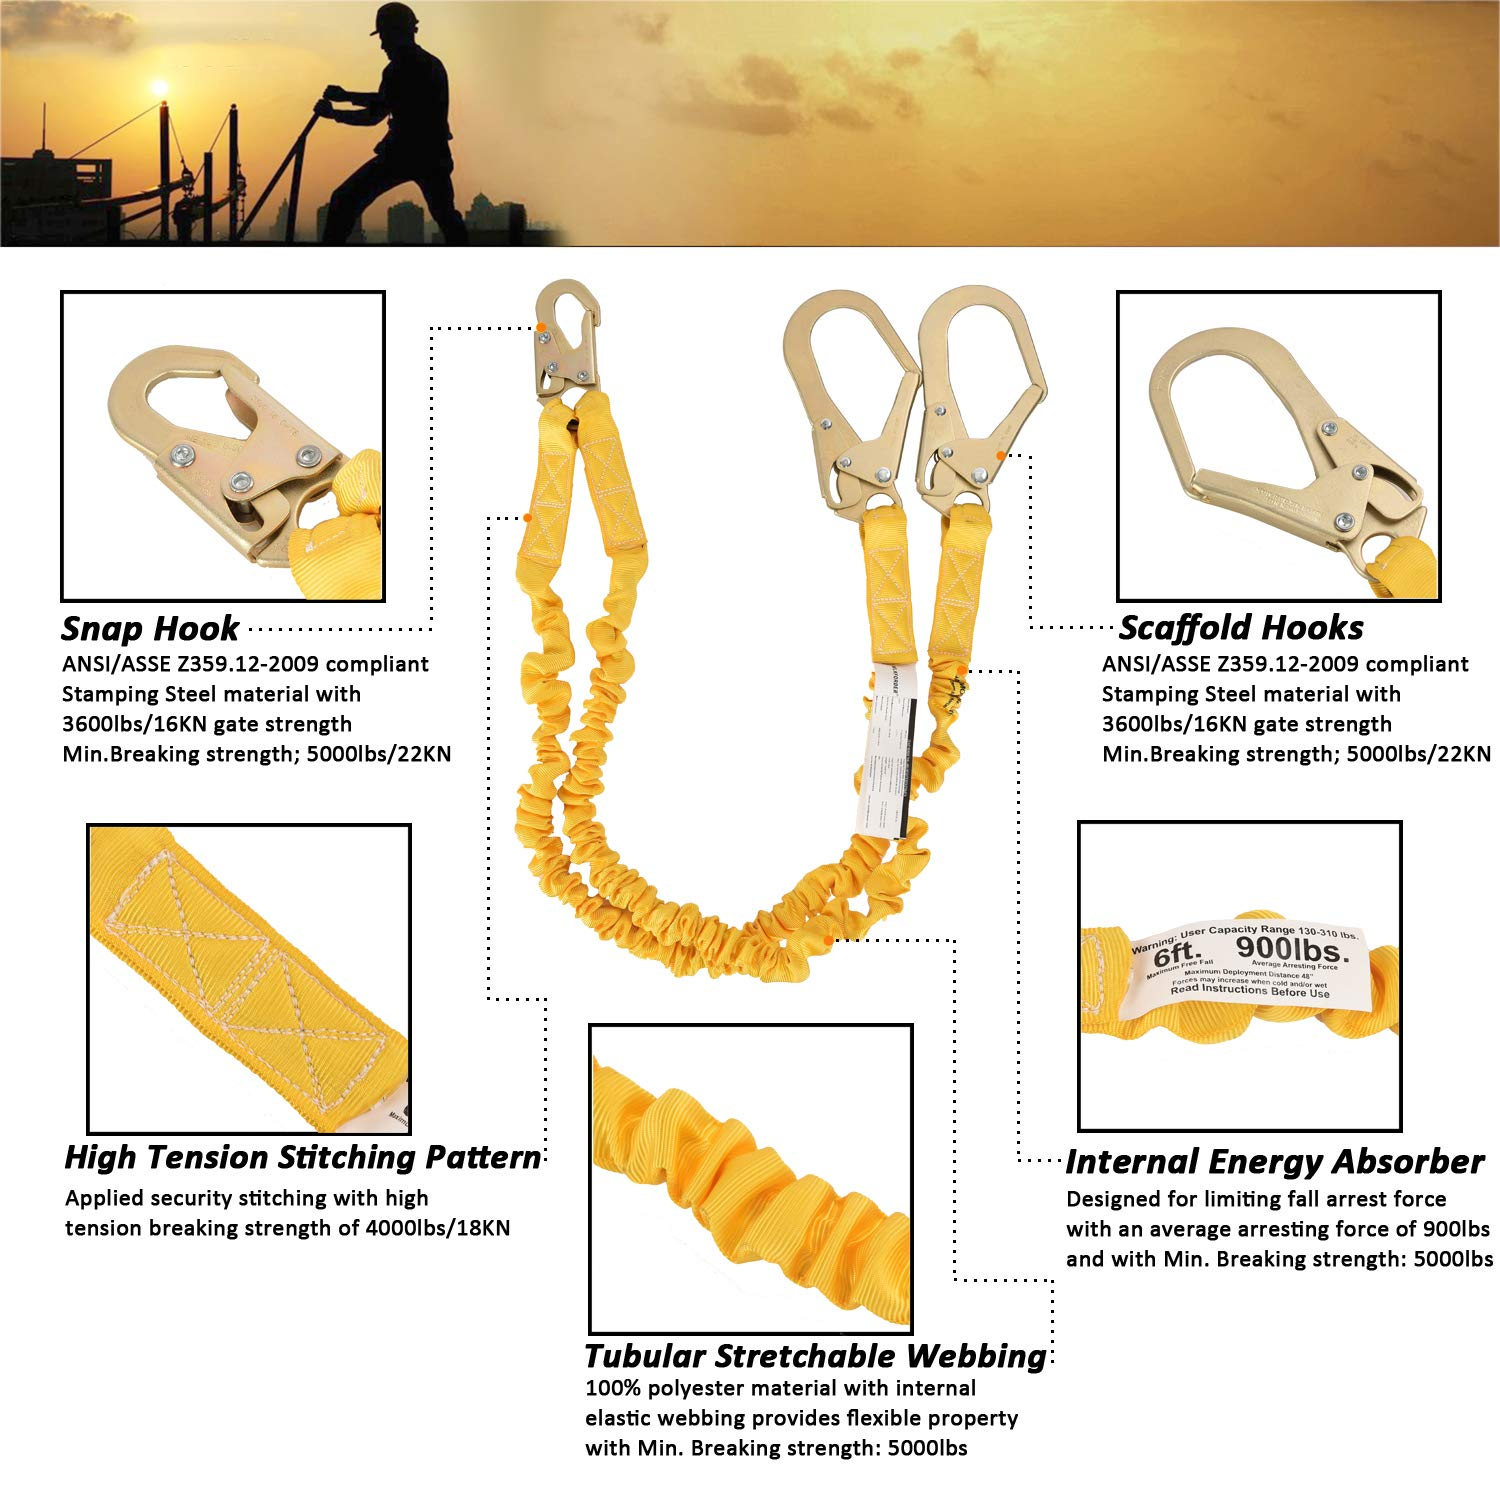 WELKFORDER Double Leg 6-Foot Fall Protection Internal Shock Absorbing Stretchable Safety Lanyard with Snap & Rebar Hook Connectors ANSI Complaint by WELKFORDER (Image #5)